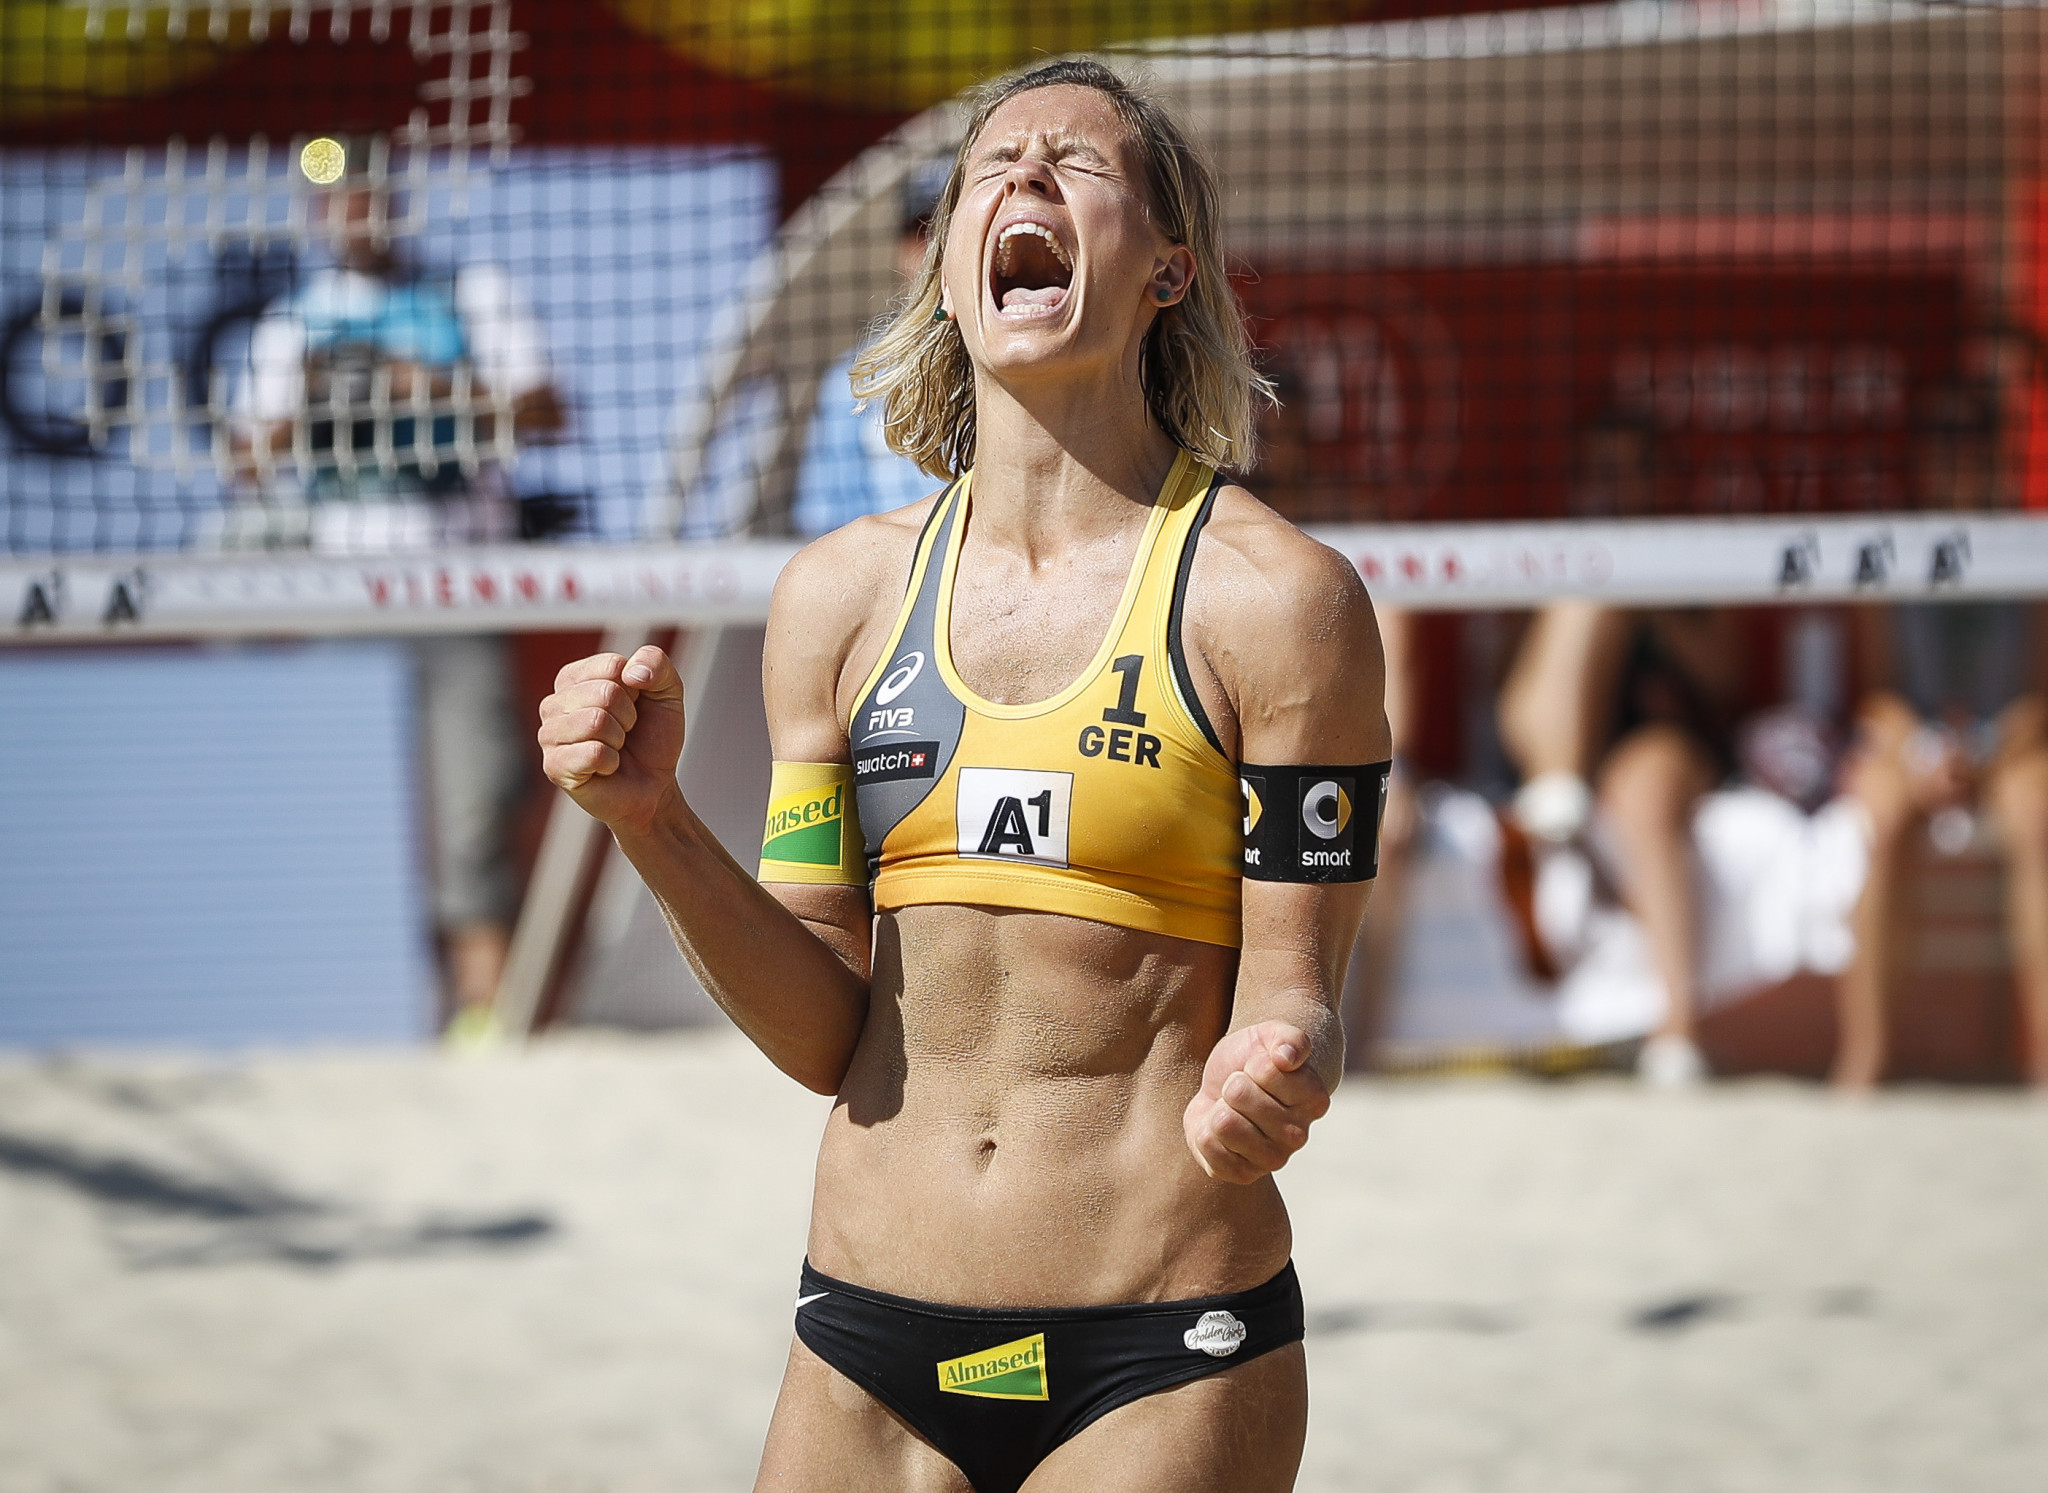 Ludwig seeking second straight title at home Beach Volleyball World Championships in Hamburg